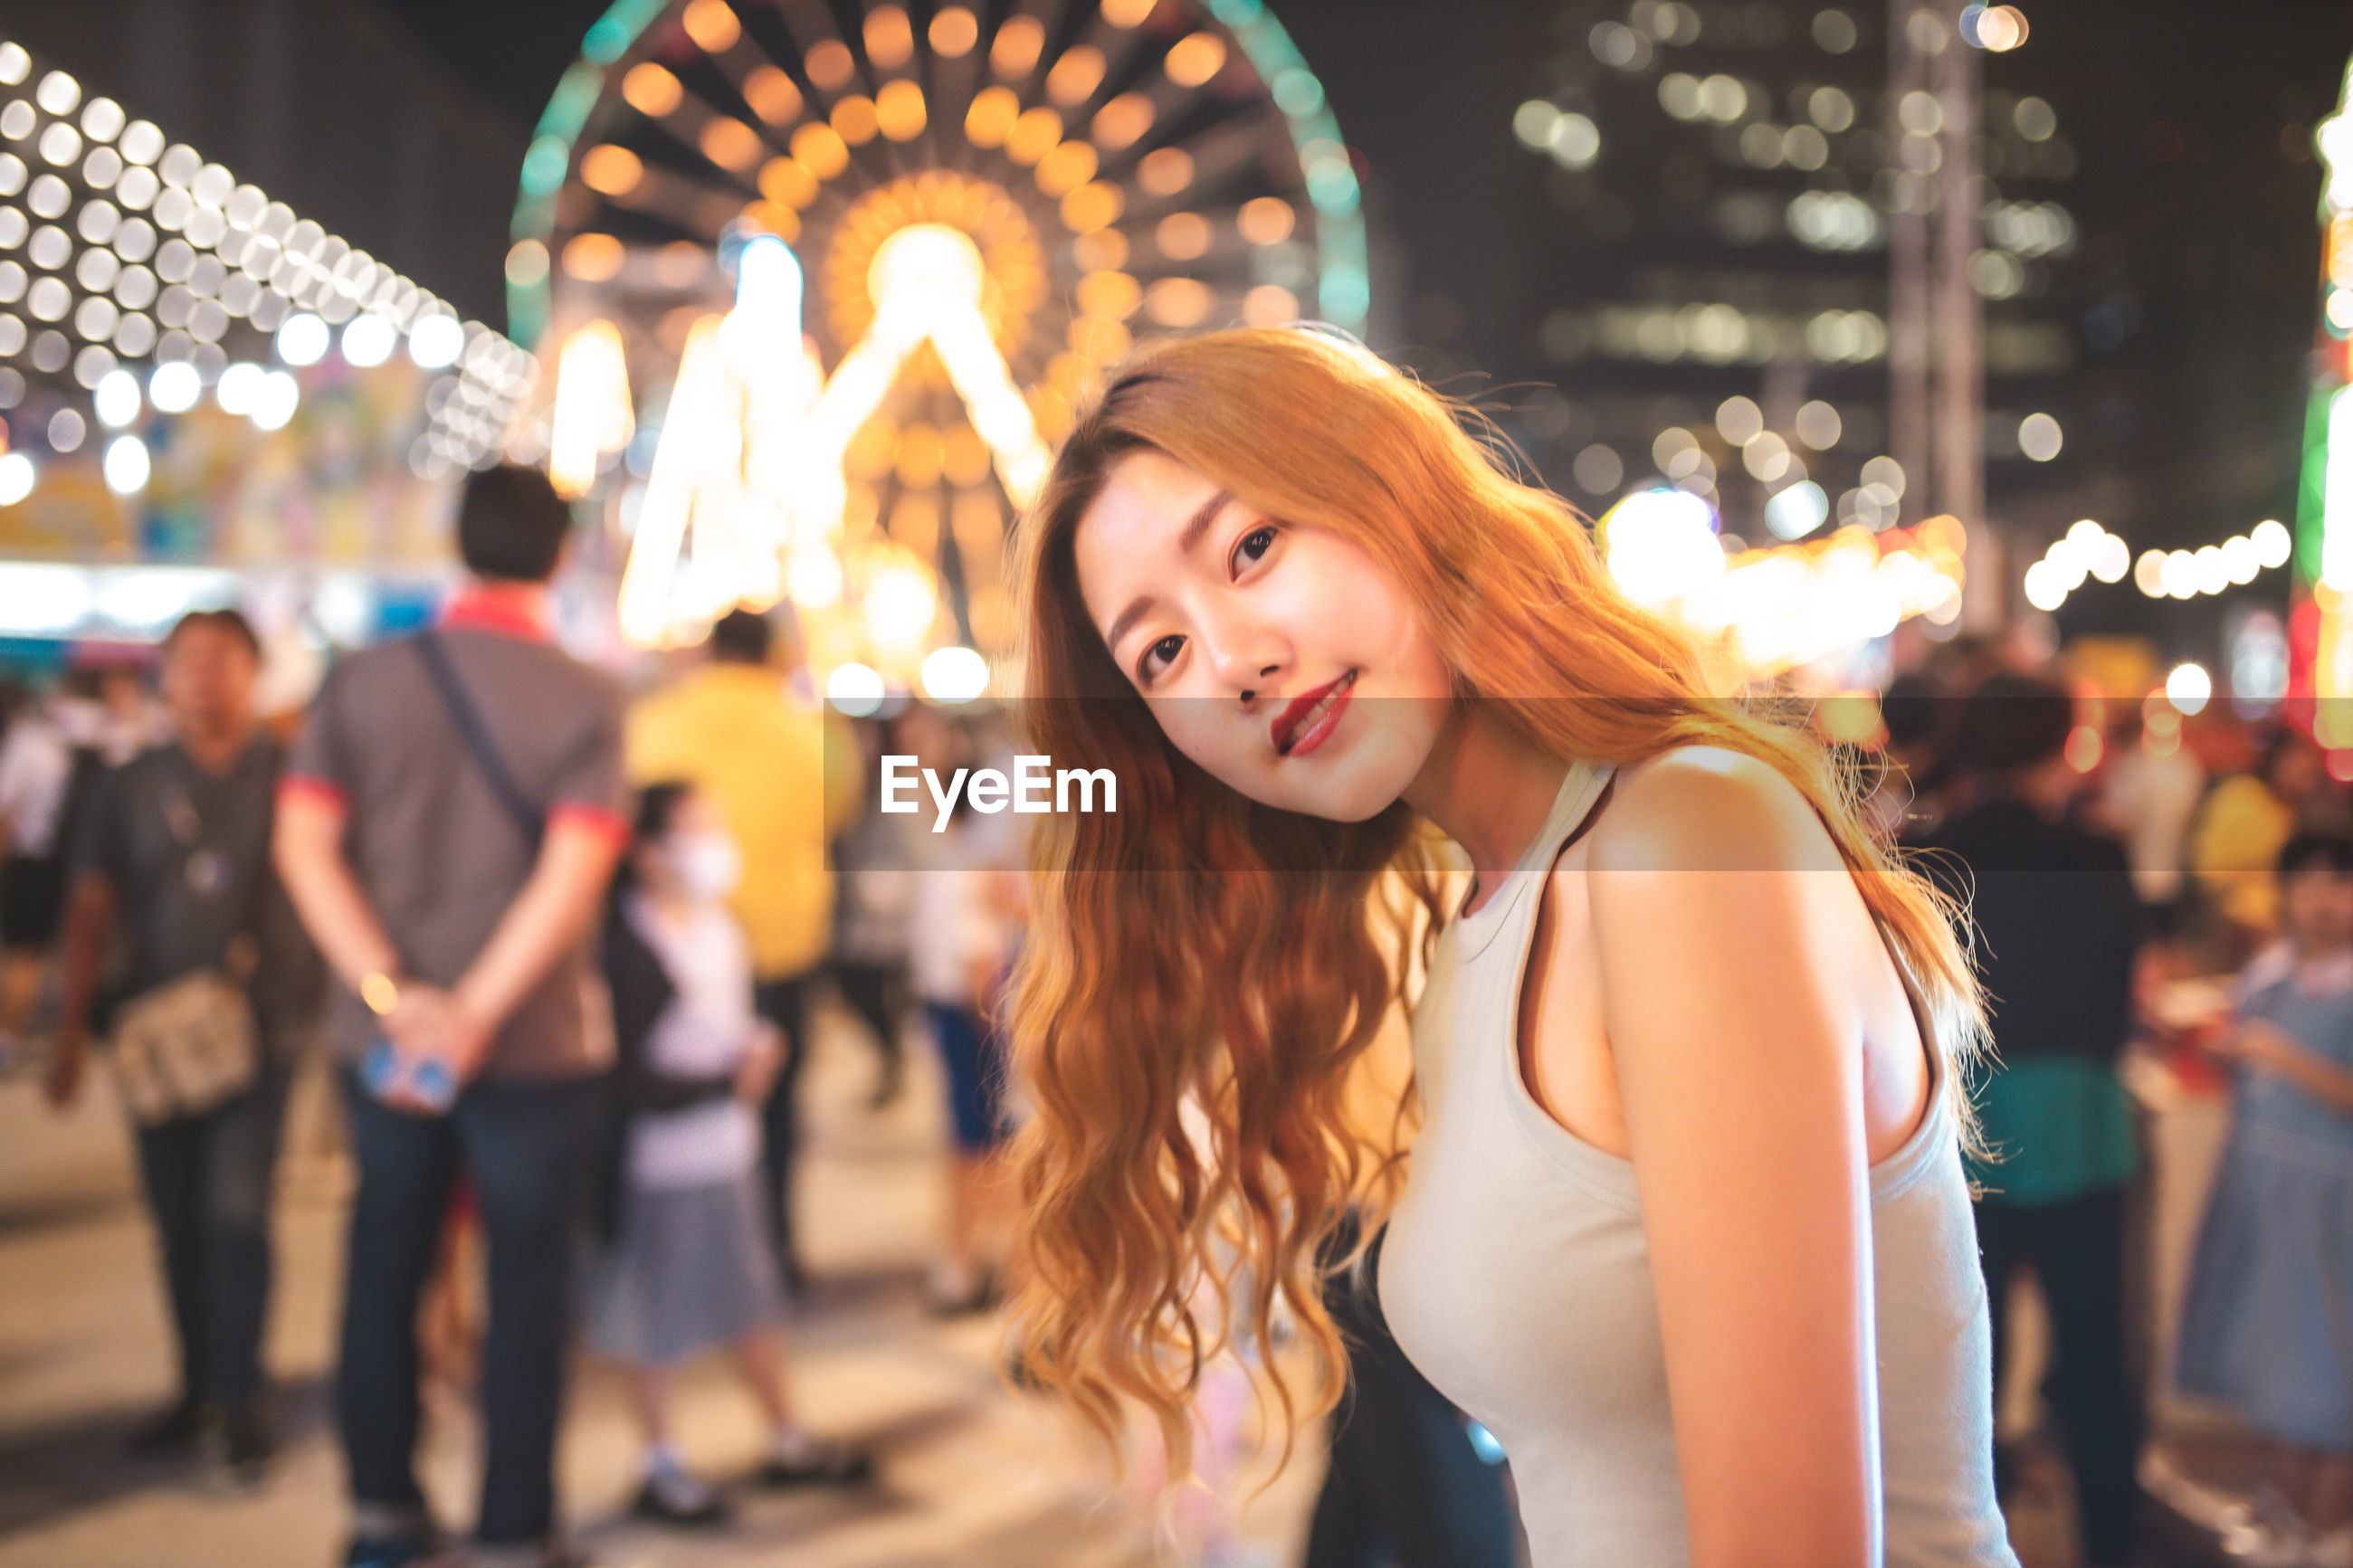 Portrait of young woman standing against illuminated ferris wheel at night